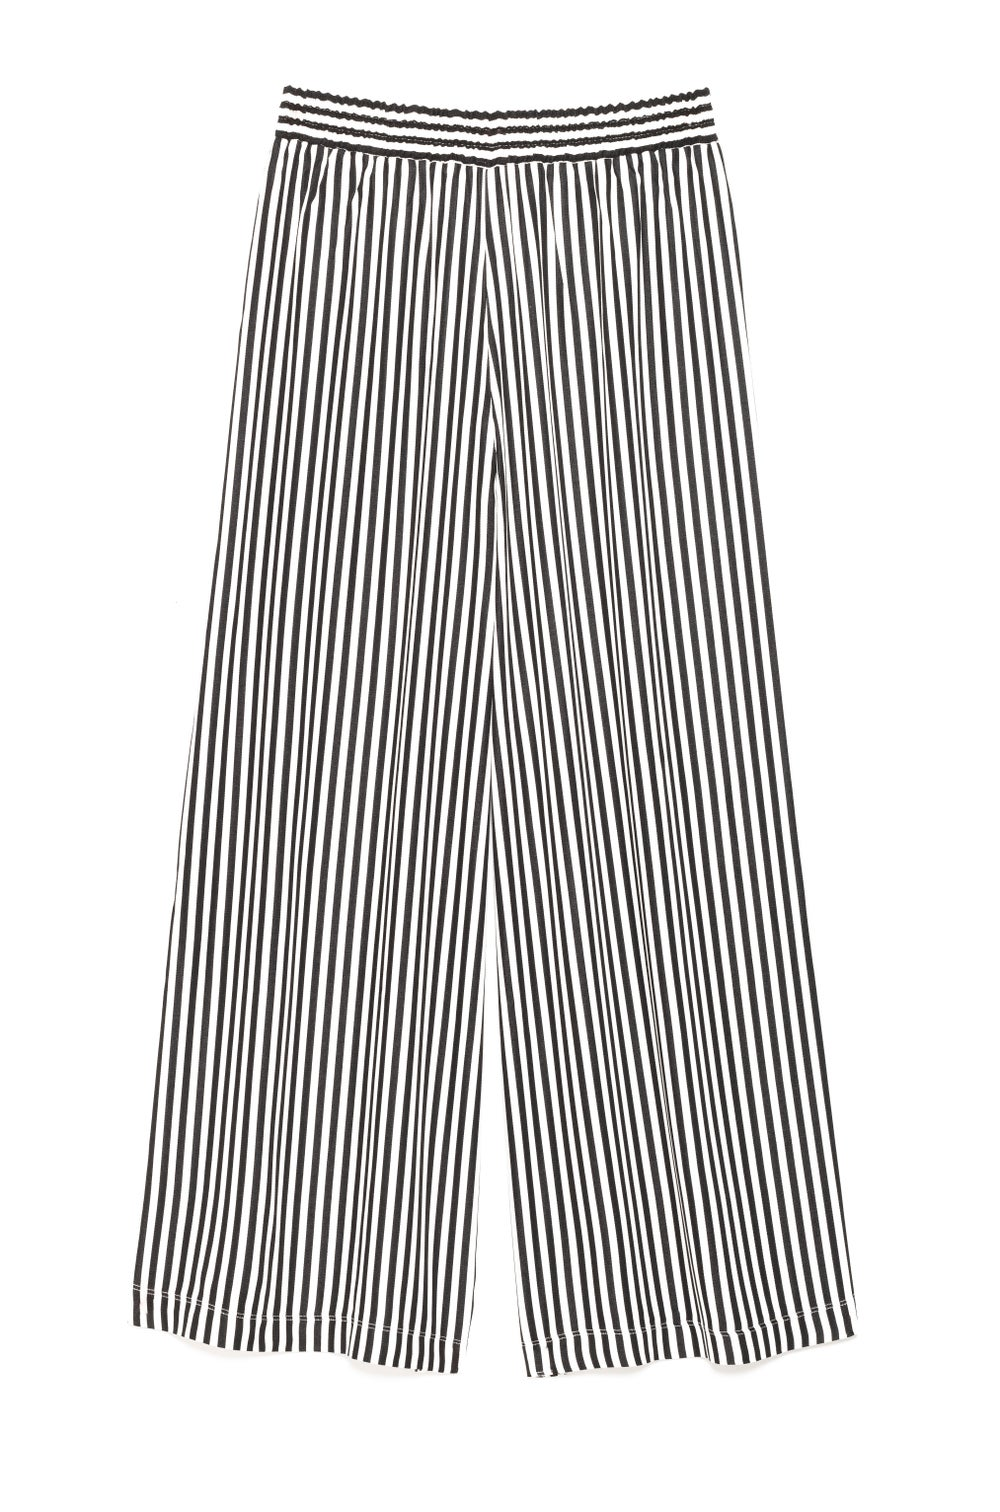 Image of Pantalon large OSCAR RAYÉ